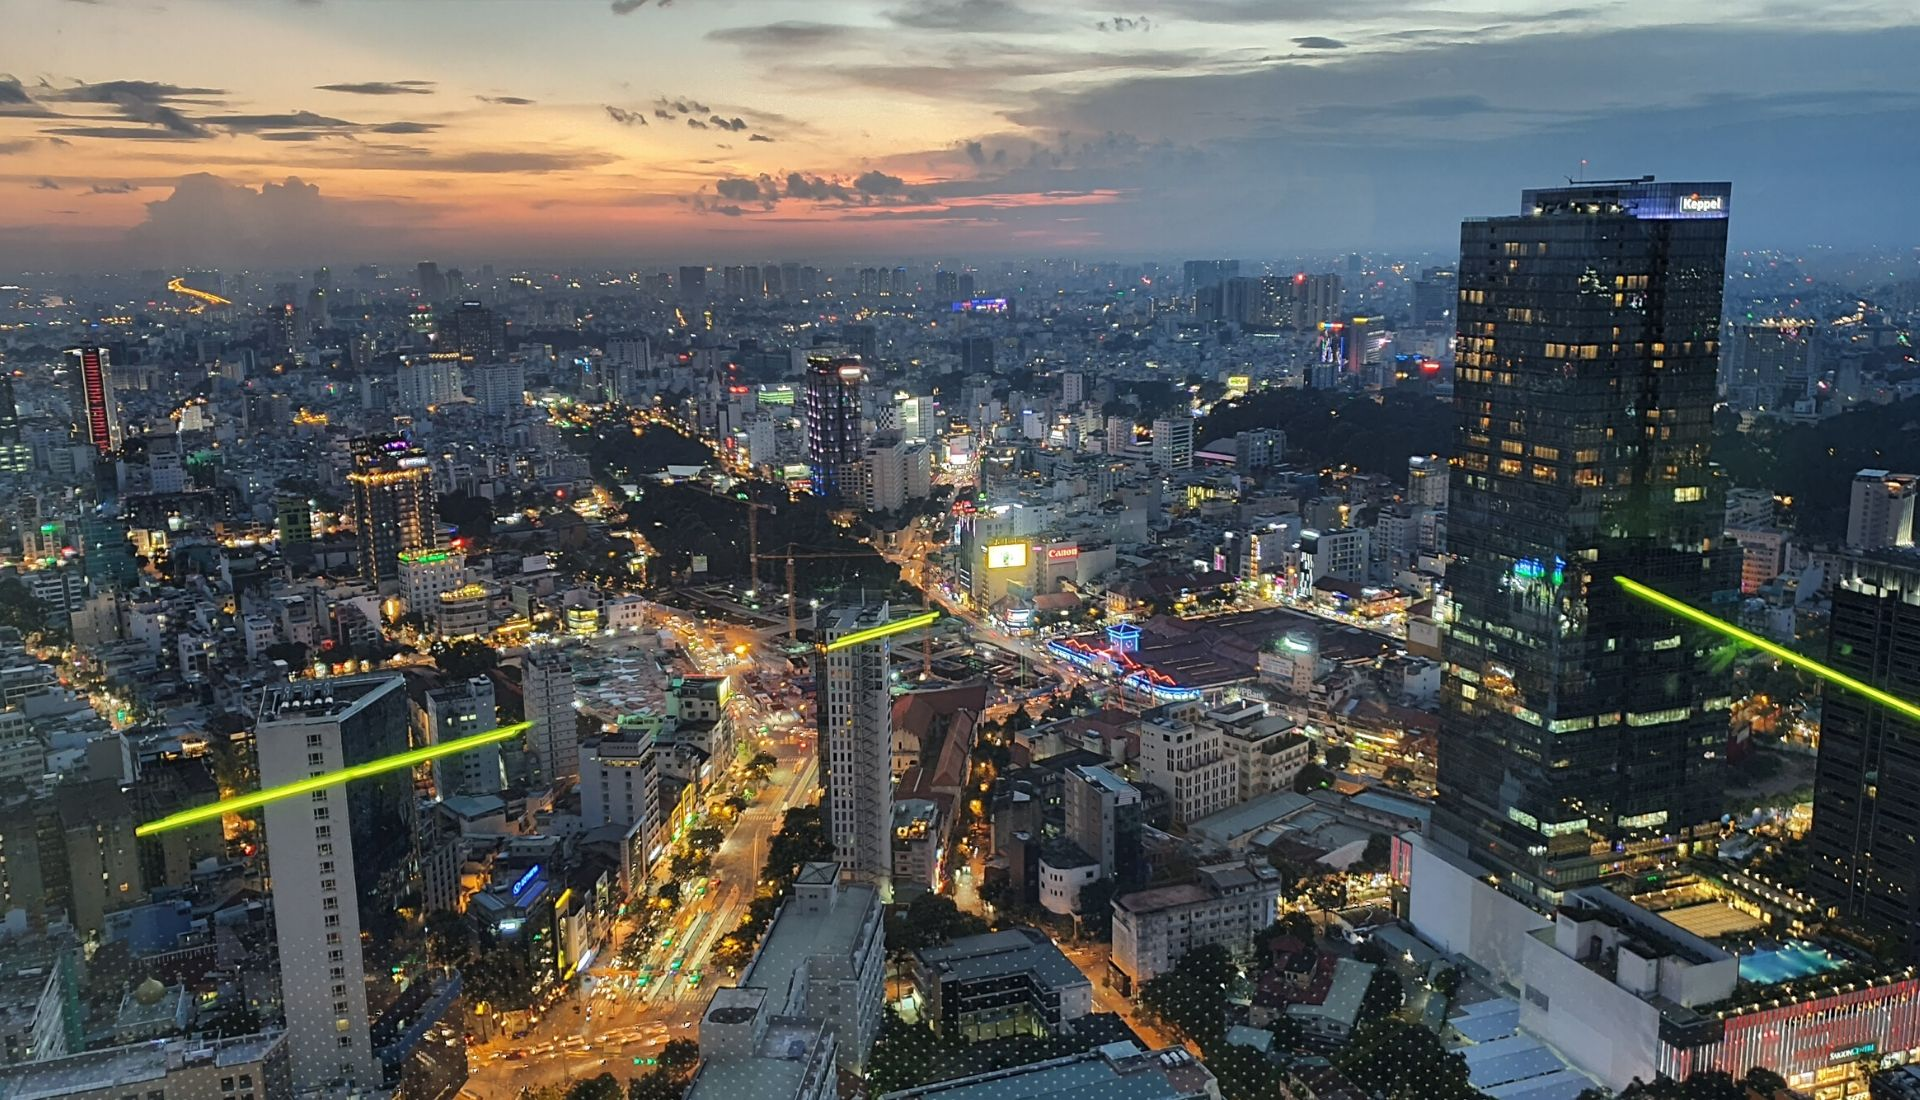 The view from Bitexco Tower at sunset - 5 days in Saigon